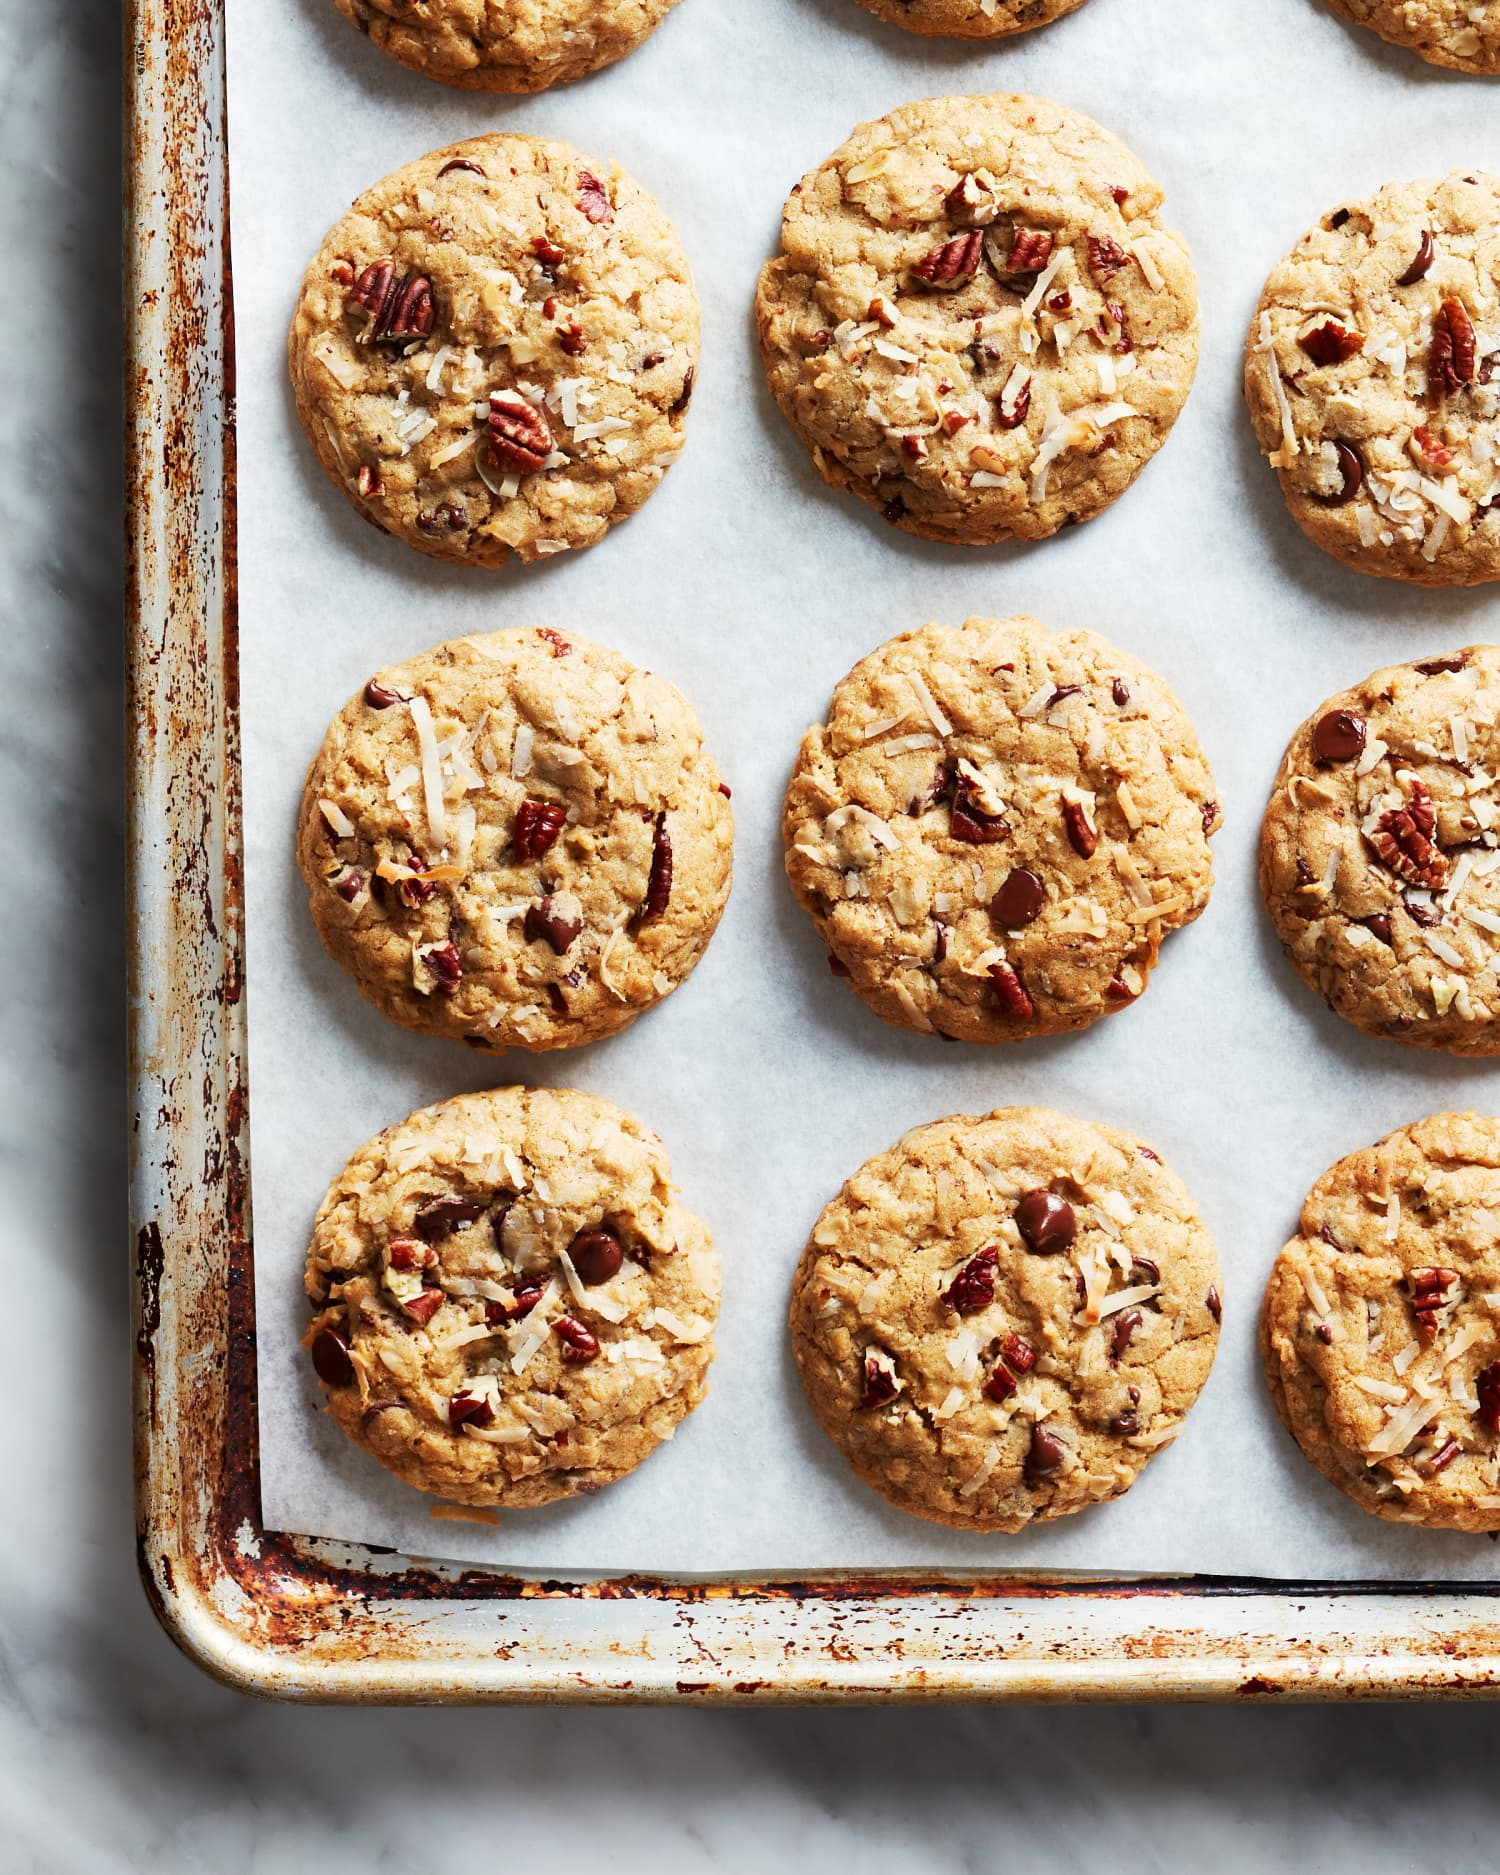 These Cowboy Cookies Are Big, Chewy, and Supremely Satisfying